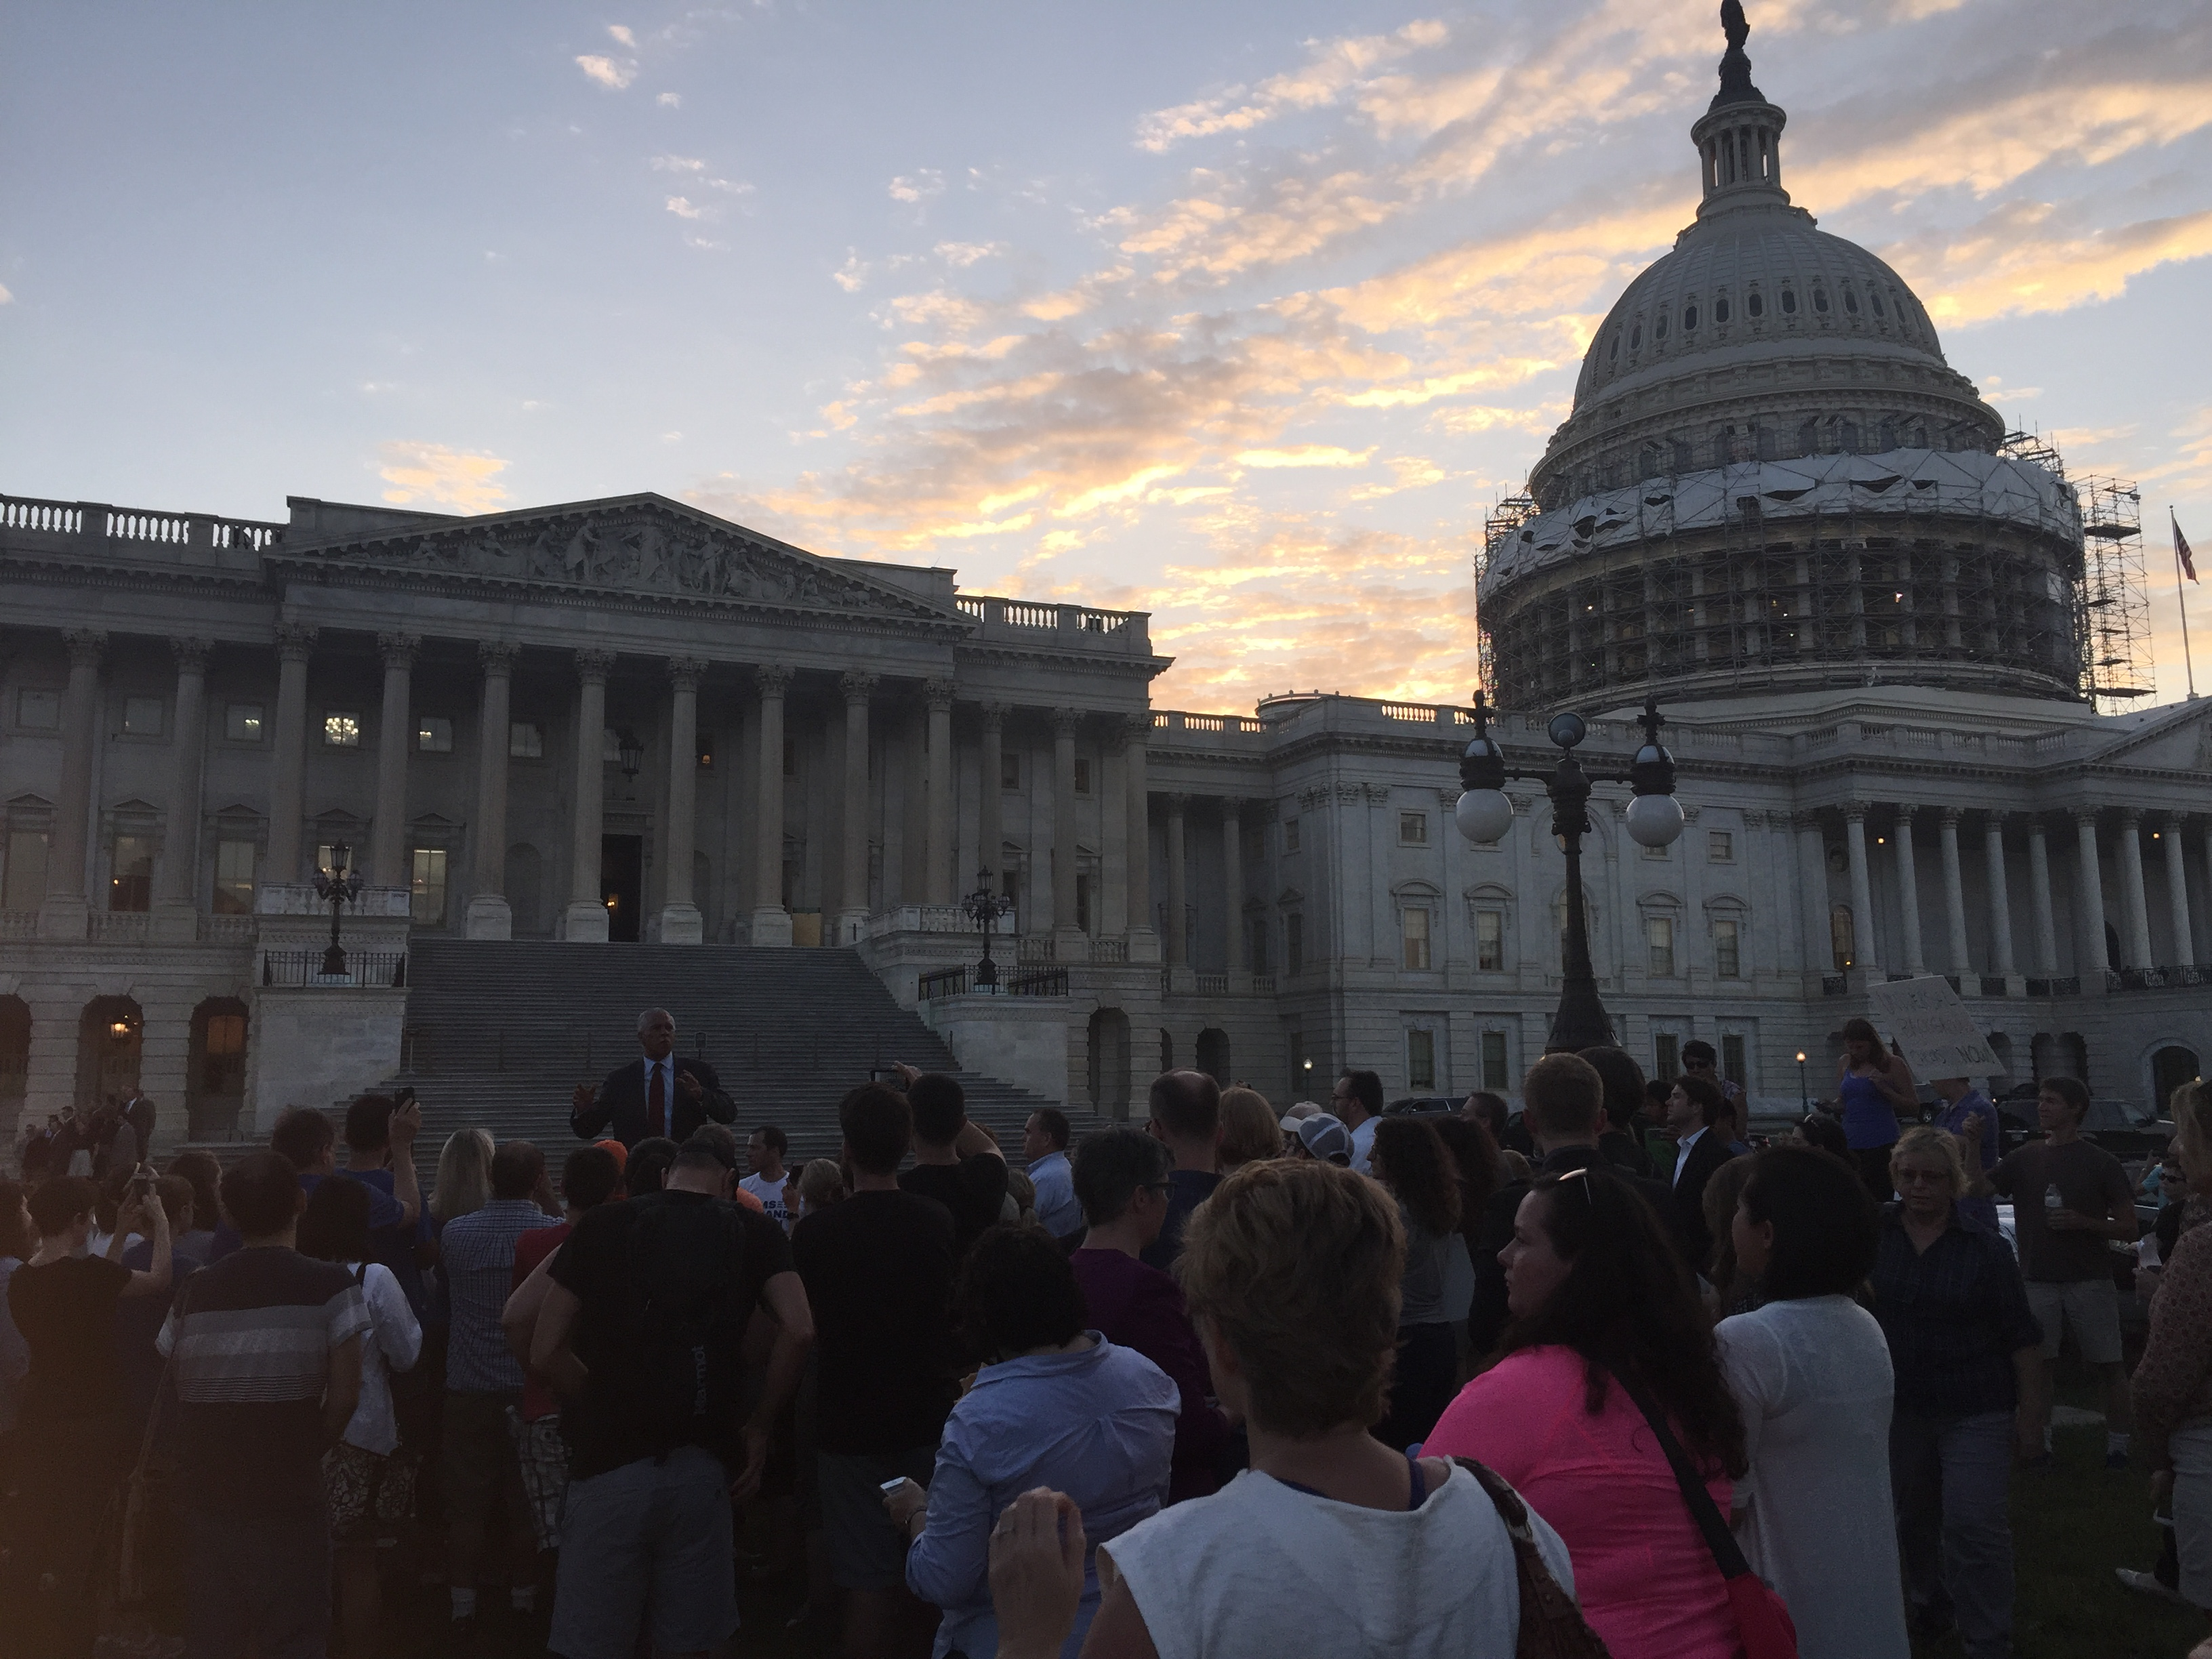 About 150-200 people gathered outside the Capitol late Wednesday in support of House Democrats who were holding a sit-in to force action on gun control legislation. The sit-in began about 11:30 a.m. local time Wednesday.